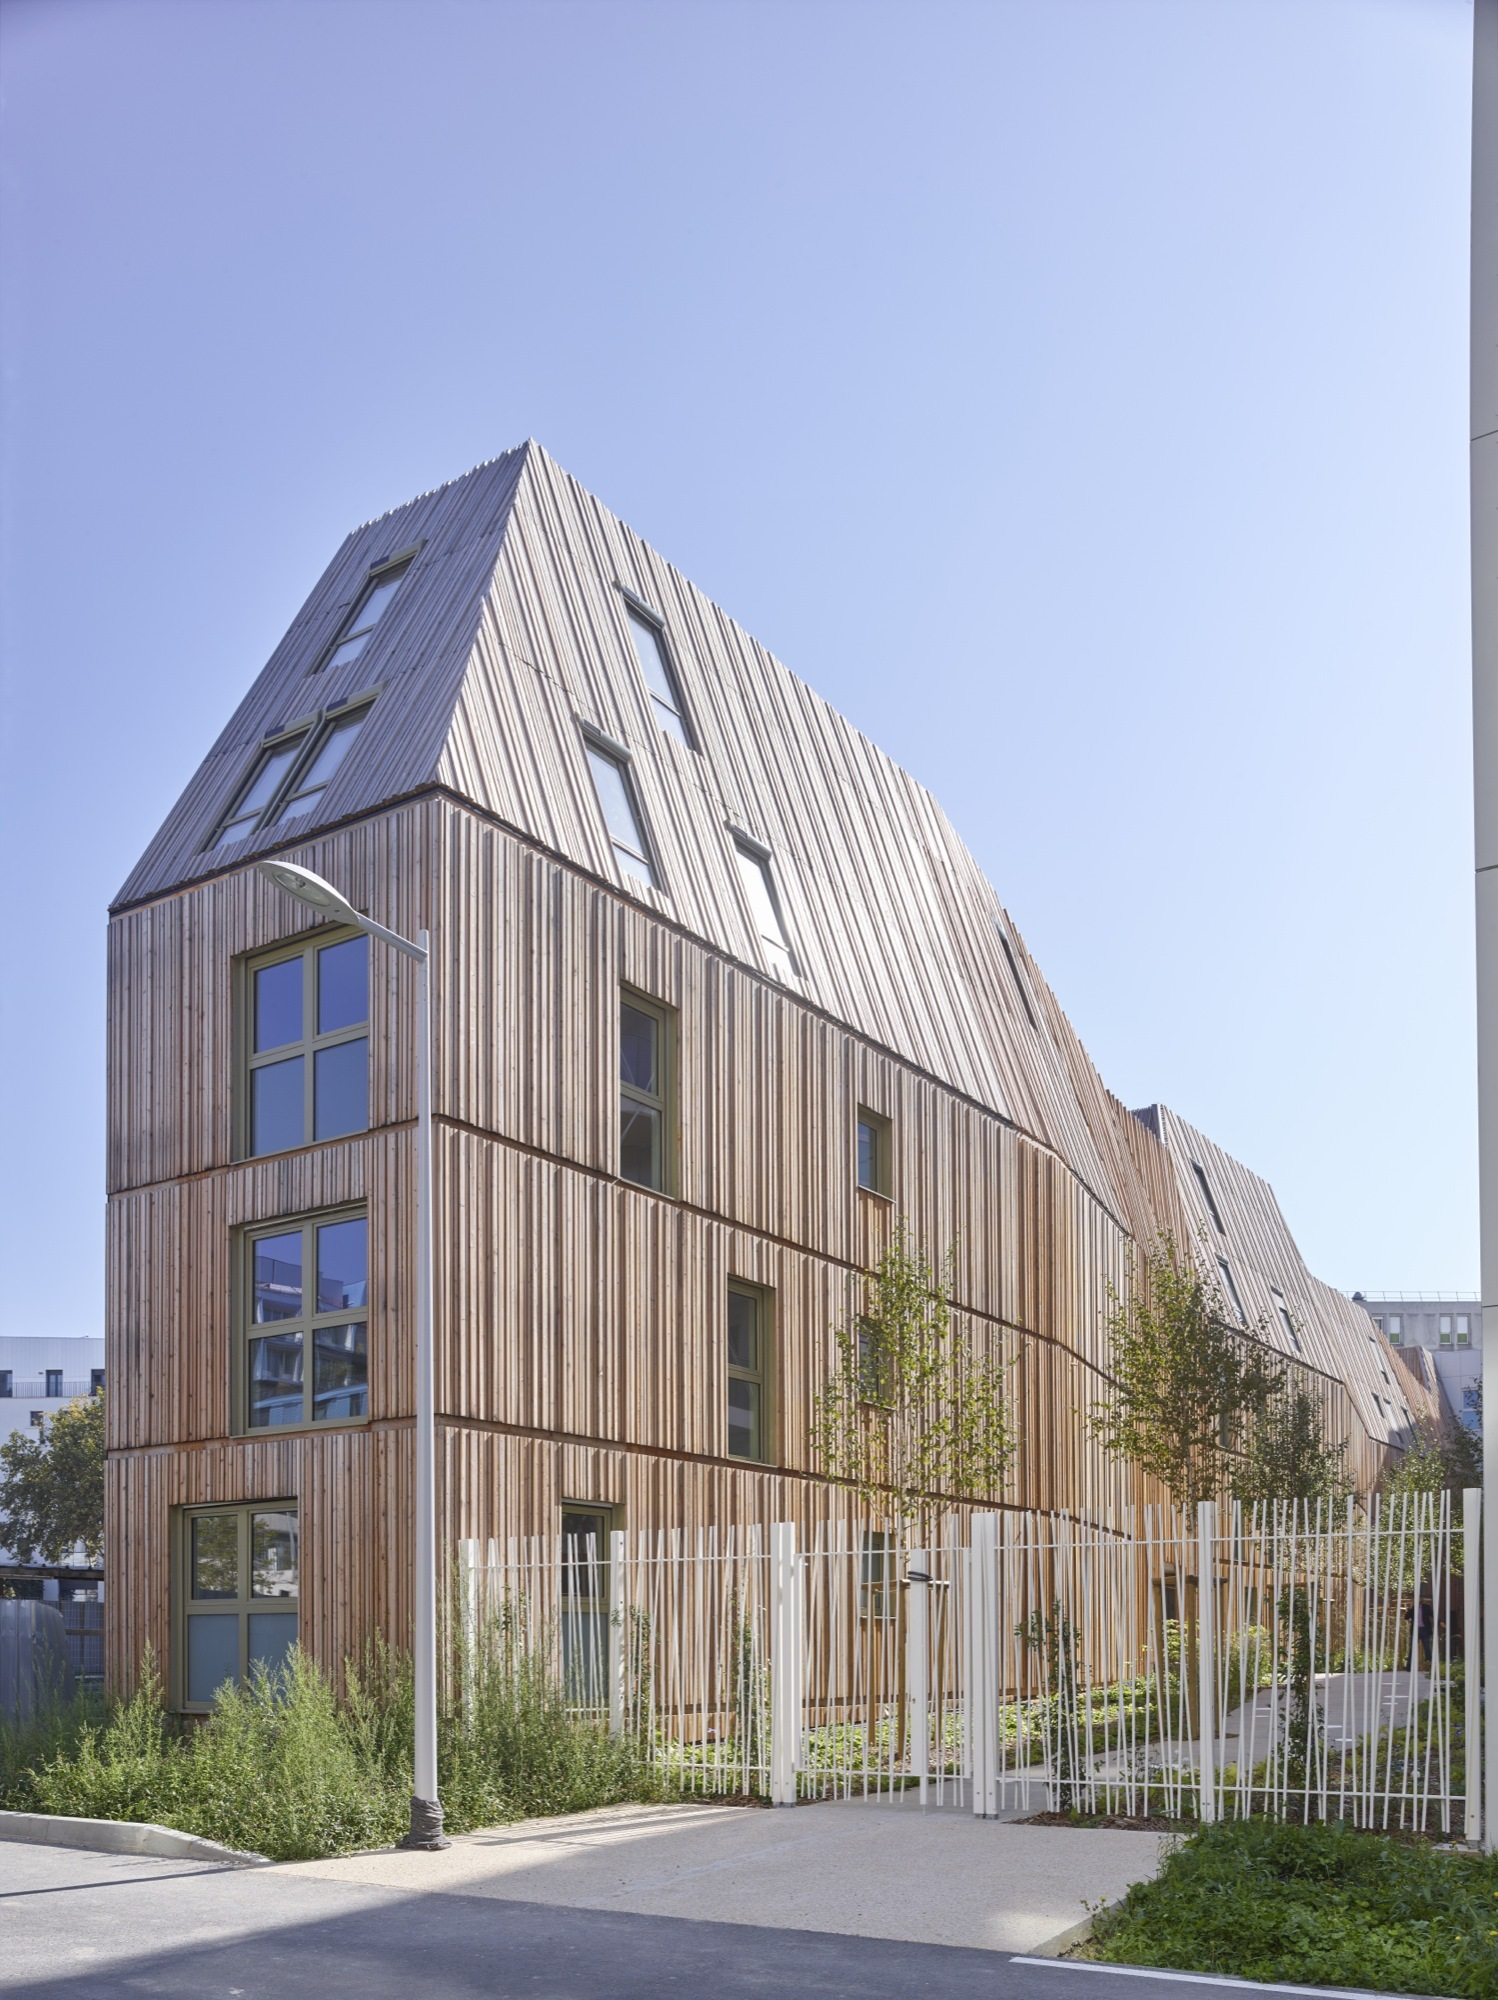 Gallery of rive seine tetrarc architects 5 for Modern mansard roof